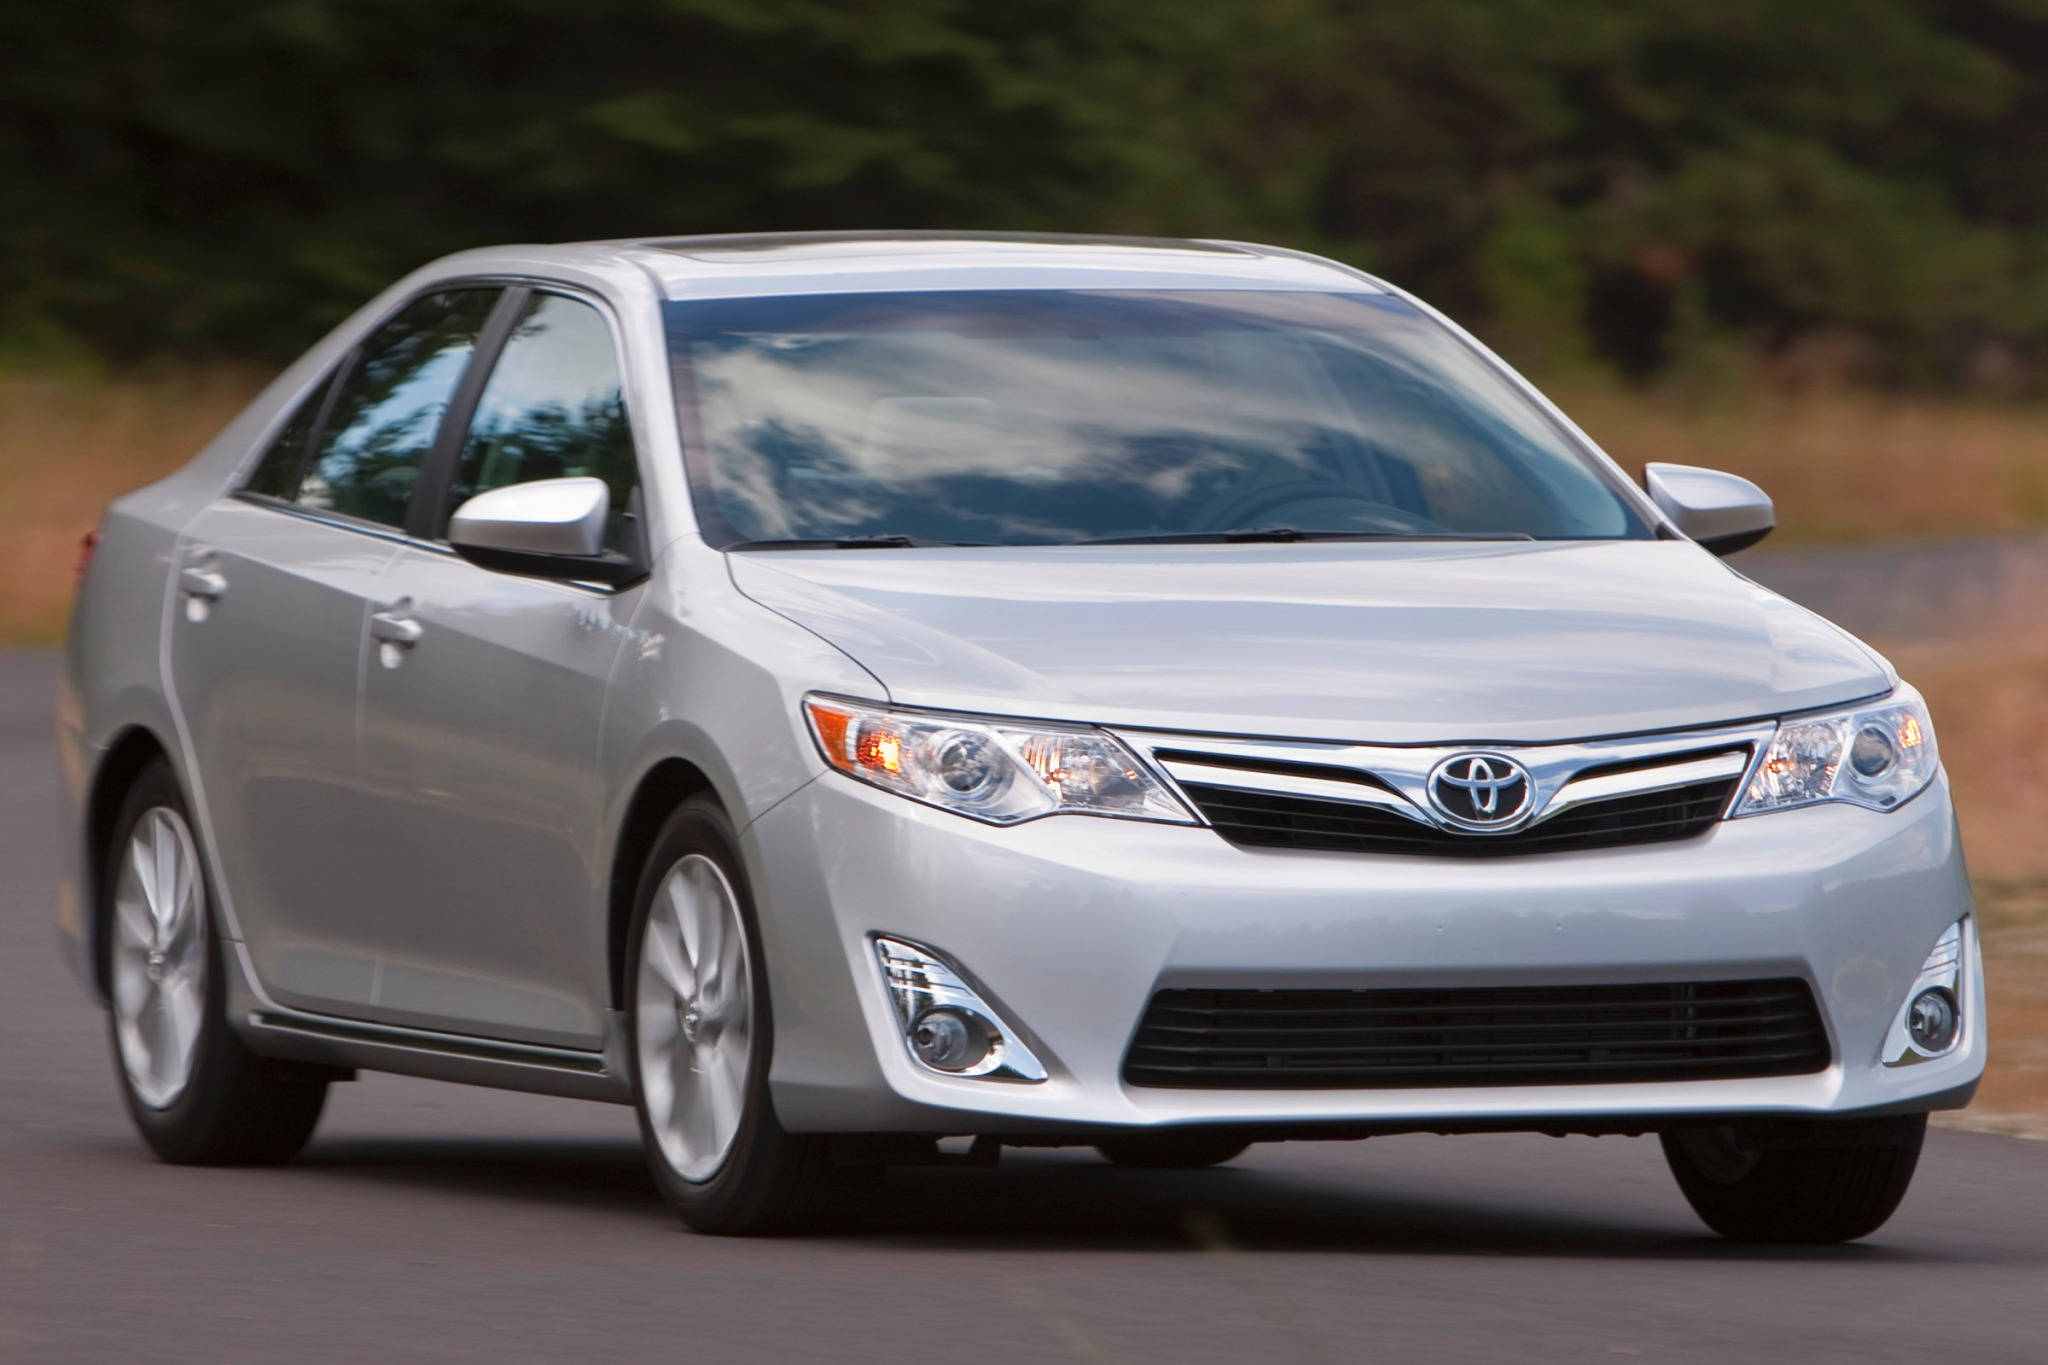 2014 Toyota Camry #10 2012 Toyota Camry XLE Sed Exterior #10